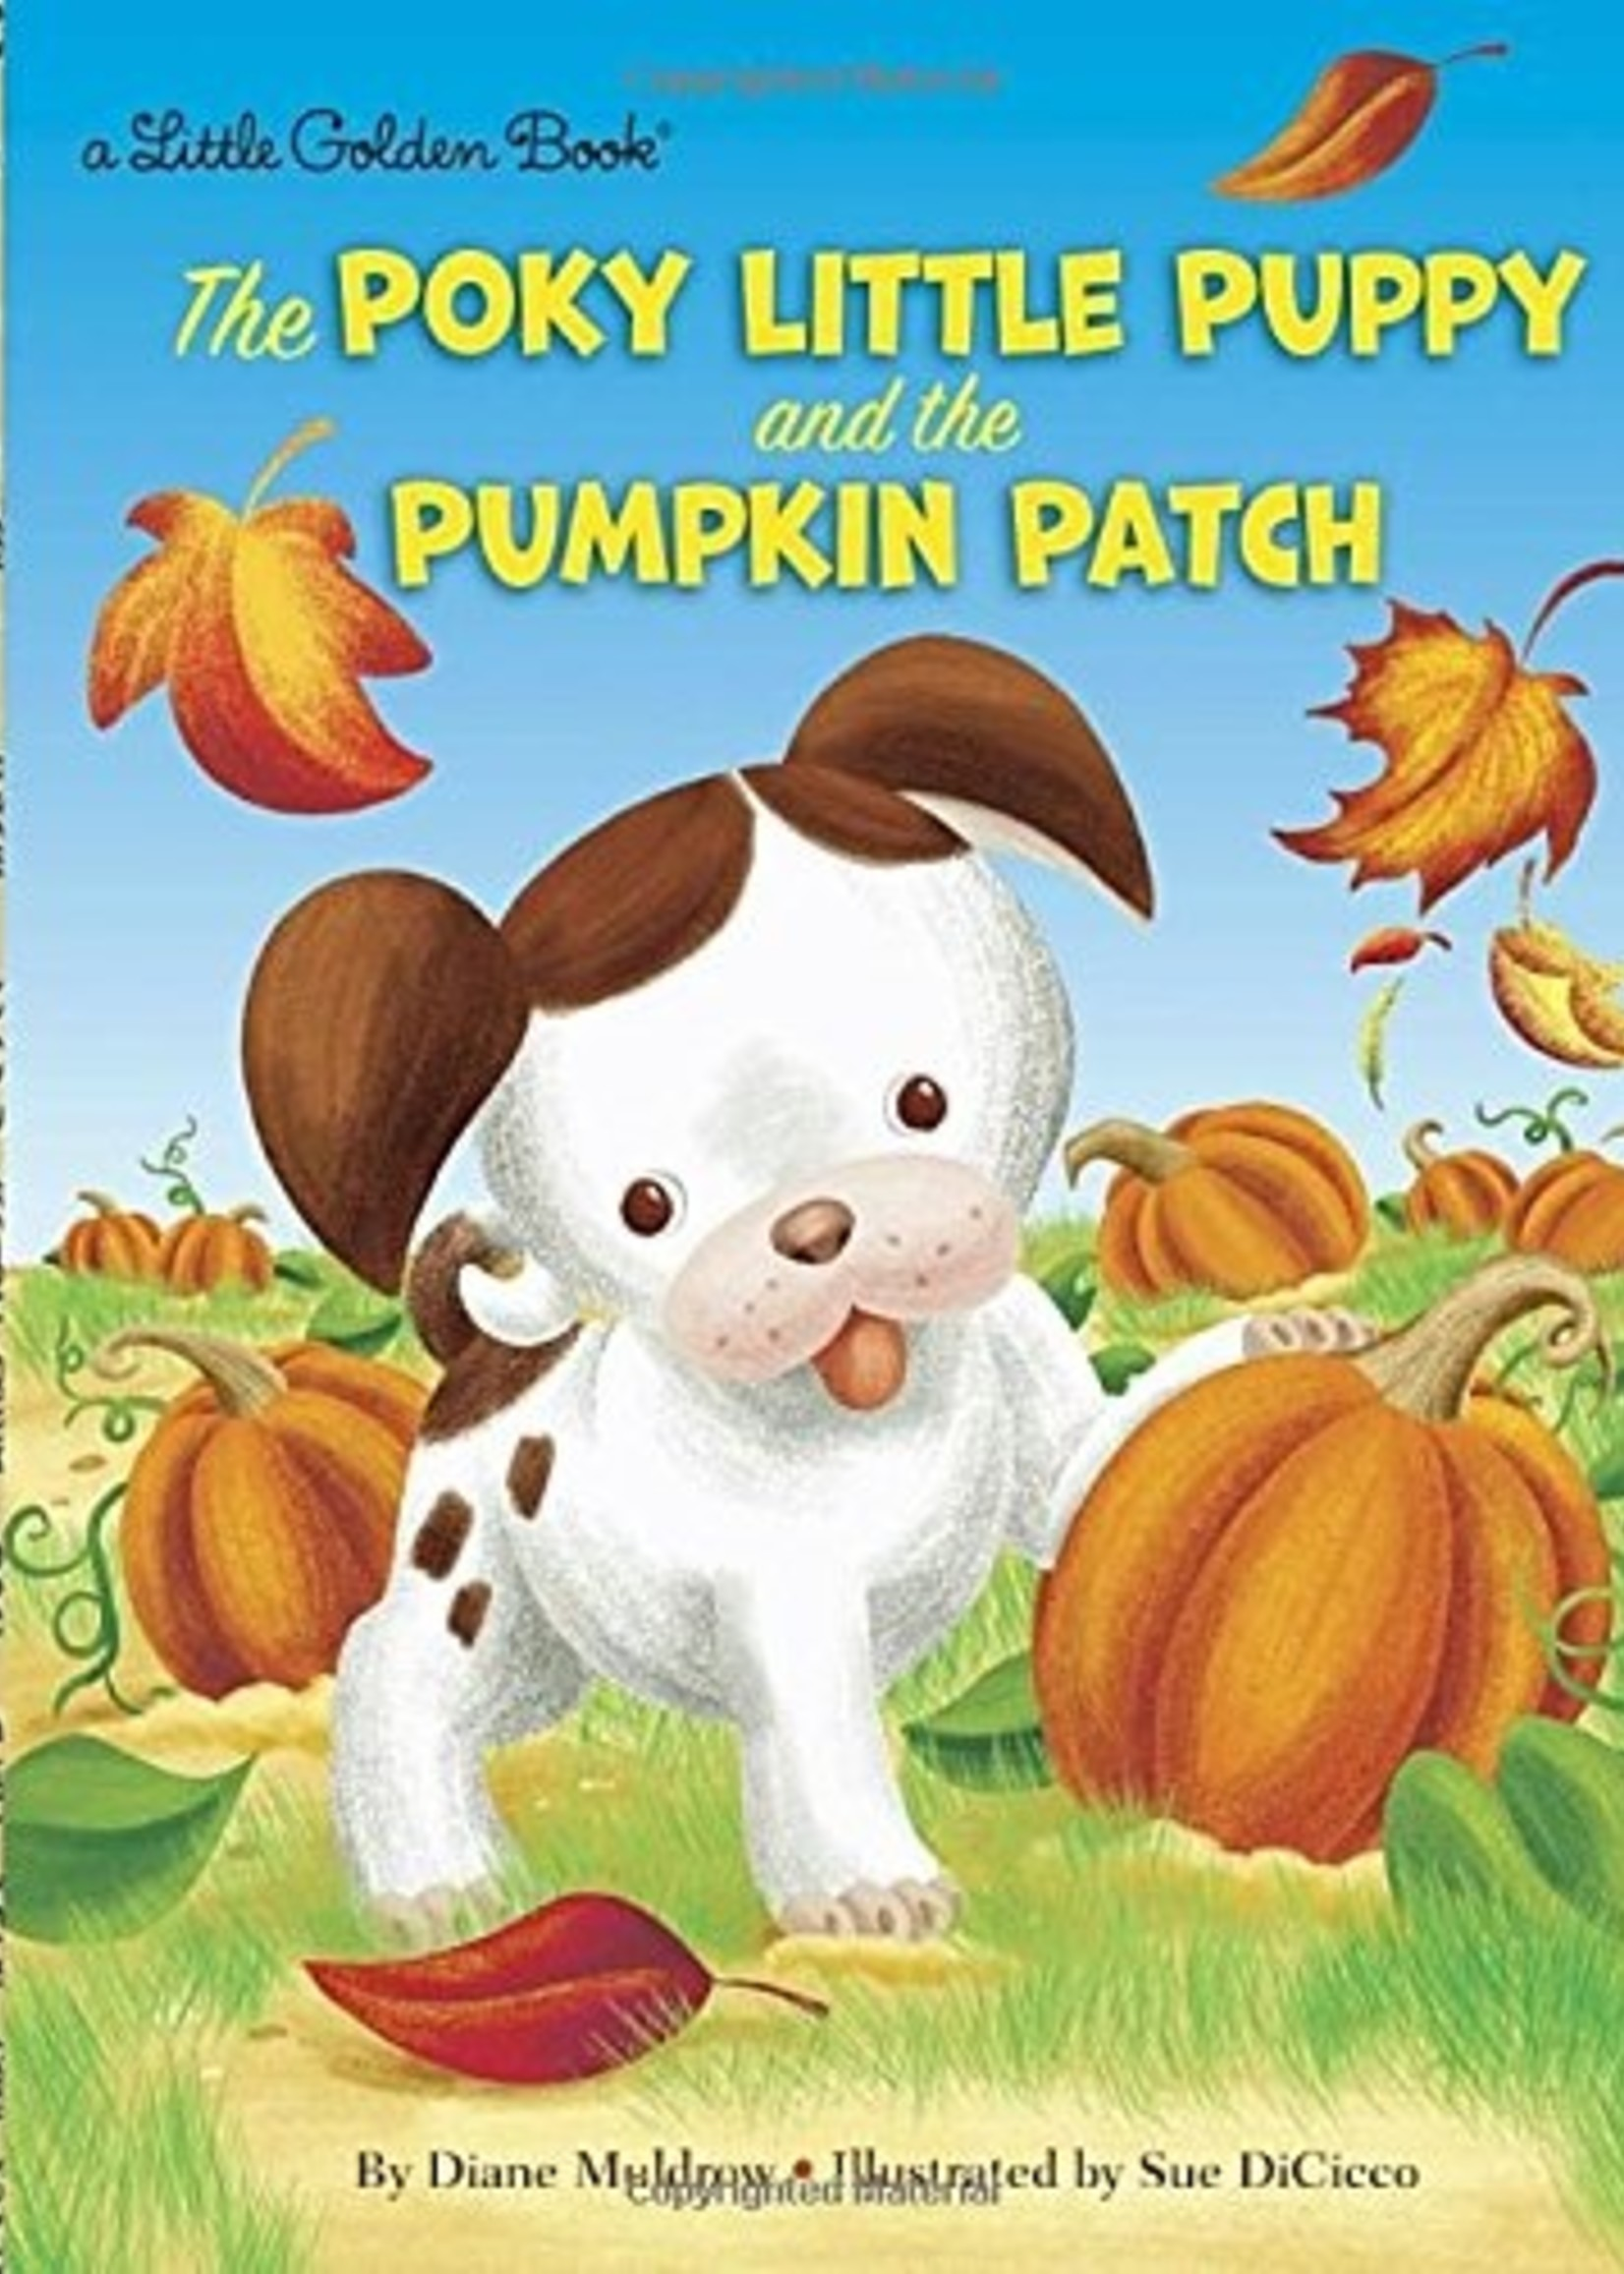 The Poky Little Puppy and the Pumpkin Patch - Little Golden Book